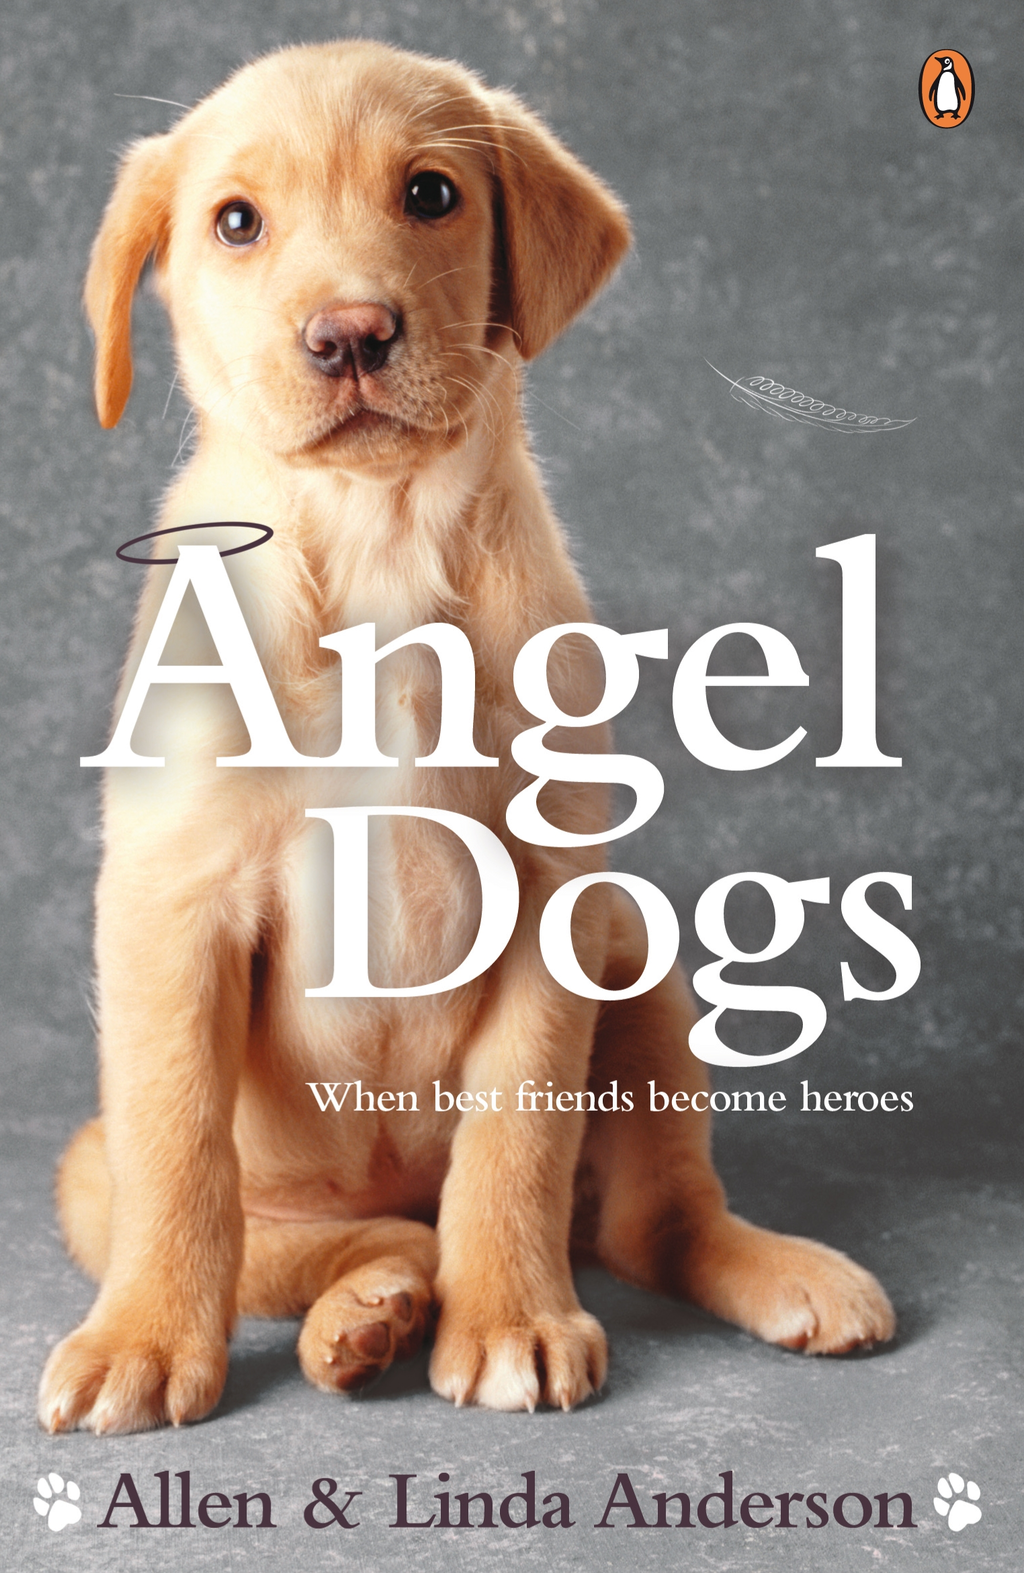 Angel Dogs When best friends become heroes